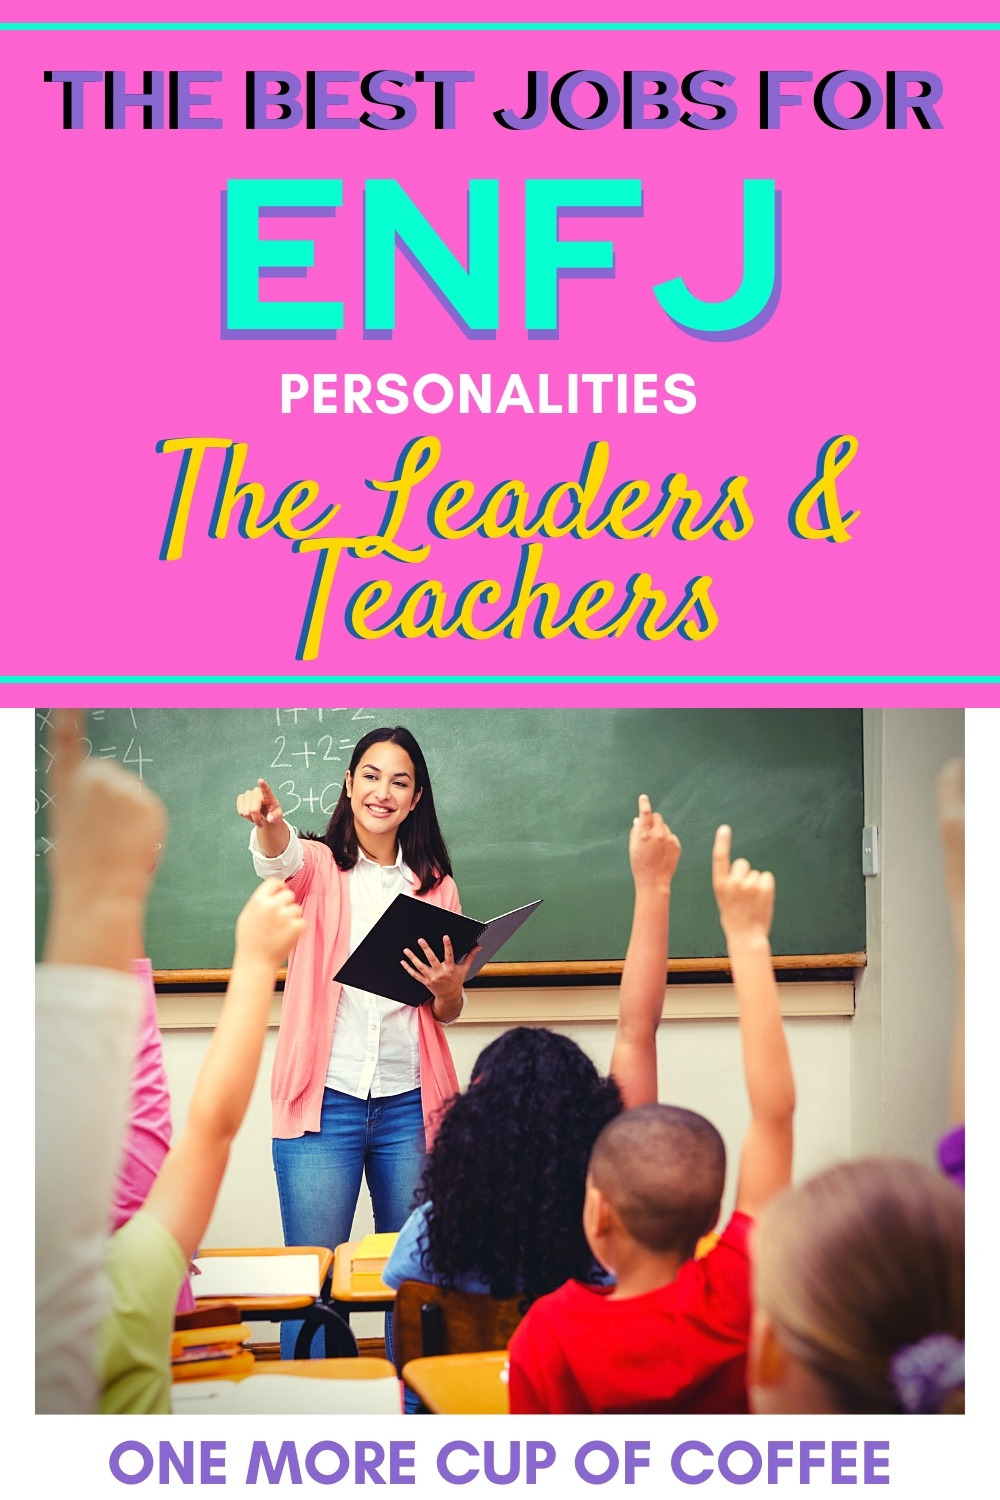 Teacher in front of a class teaching to represent jobs that are best for ENFJ personalities.